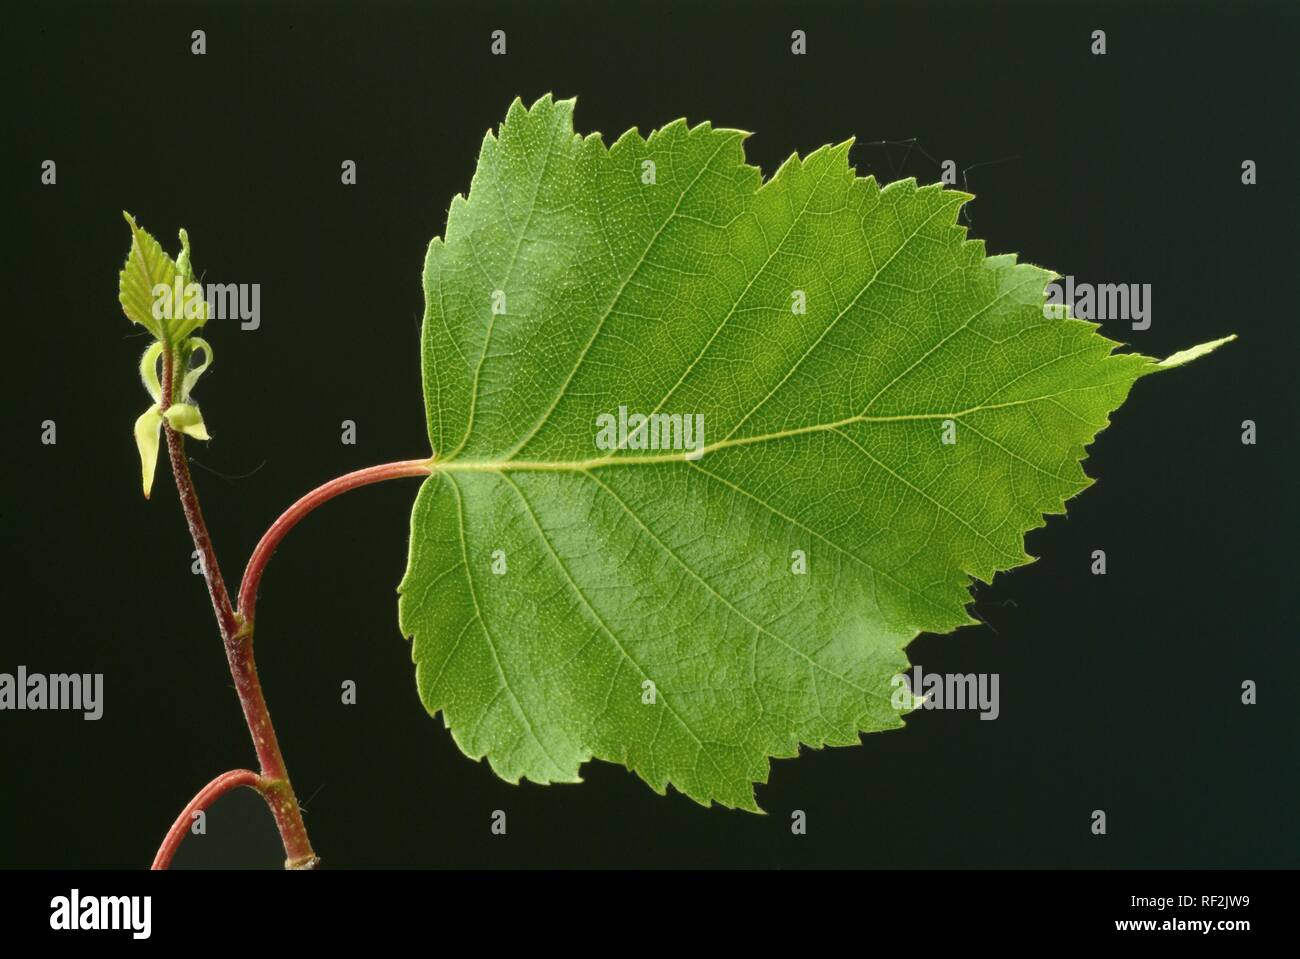 Silver -, White - or European Weeping Birch leaves (Betula pendula), medicinal plant, healing plant - Stock Image